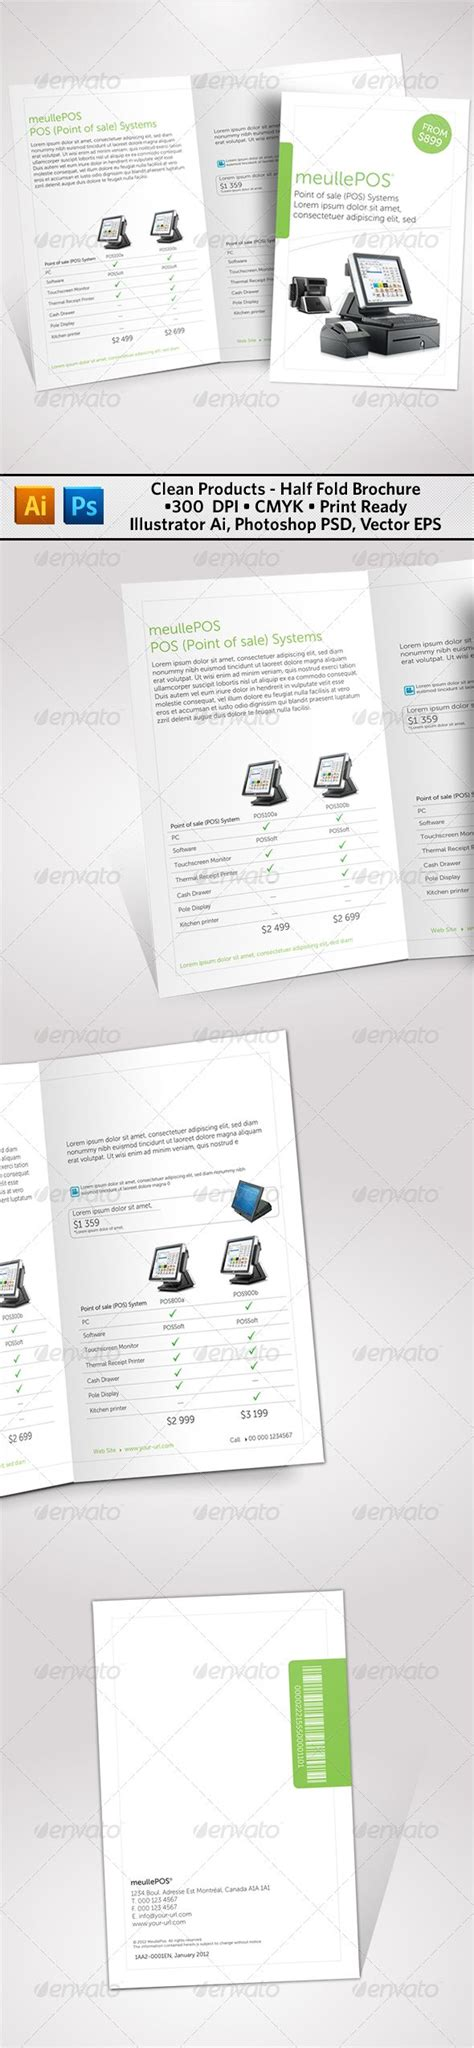 adobe photoshop brochure templates 17 best images about print templates on fonts